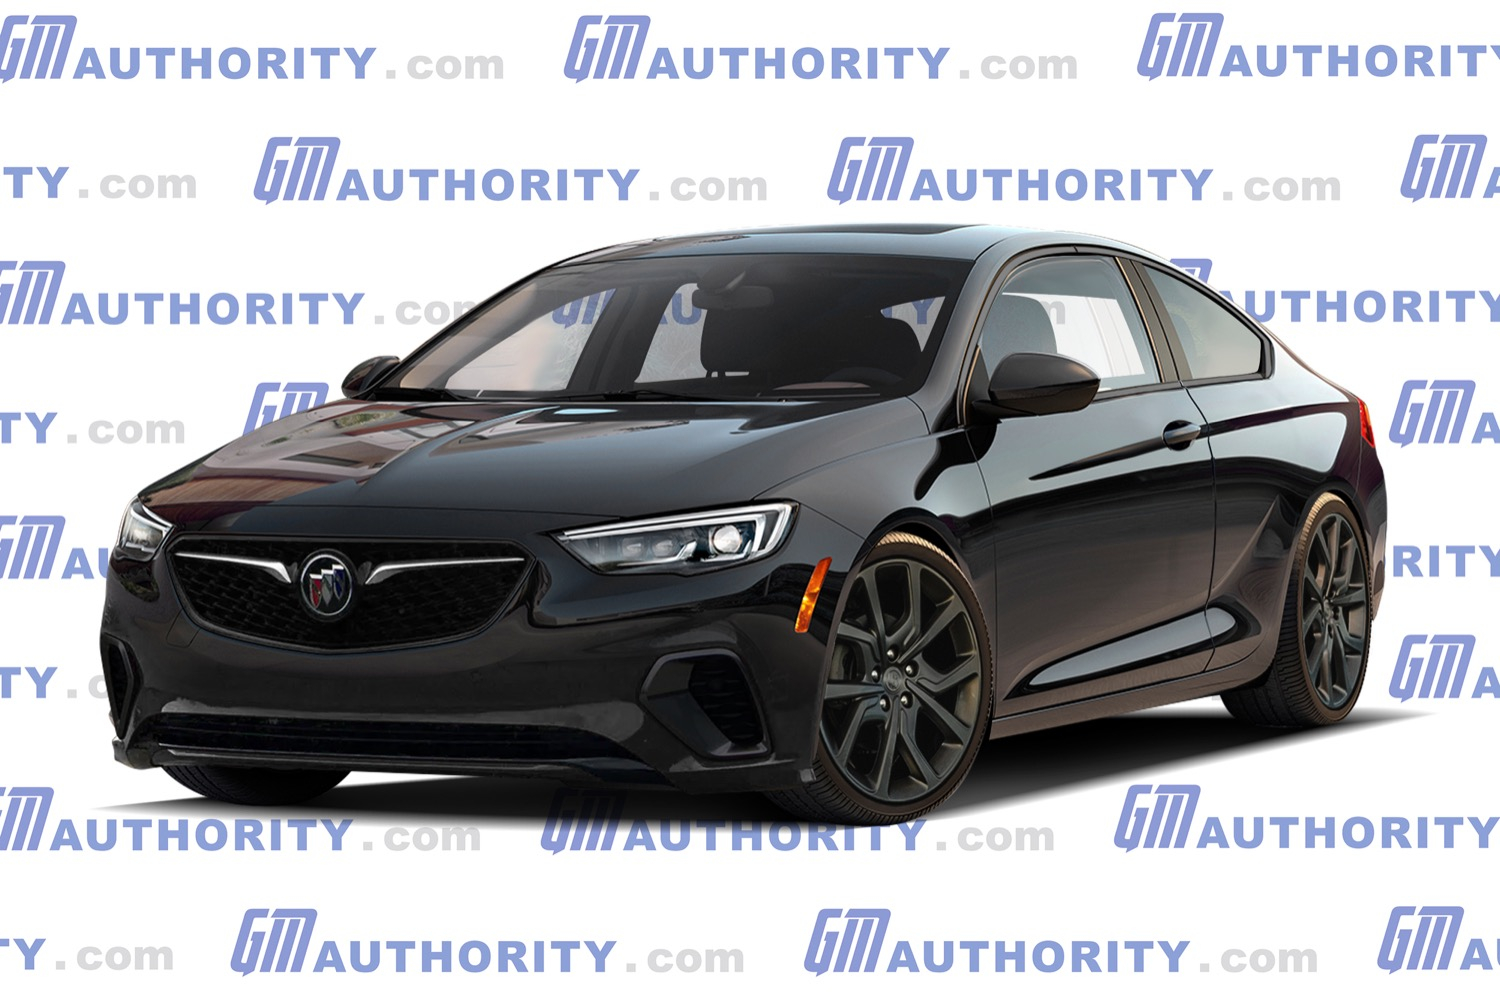 Modern Buick Regal Gnx Rendered | Gm Authority New 2022 Buick Regal Images, Price, Performance